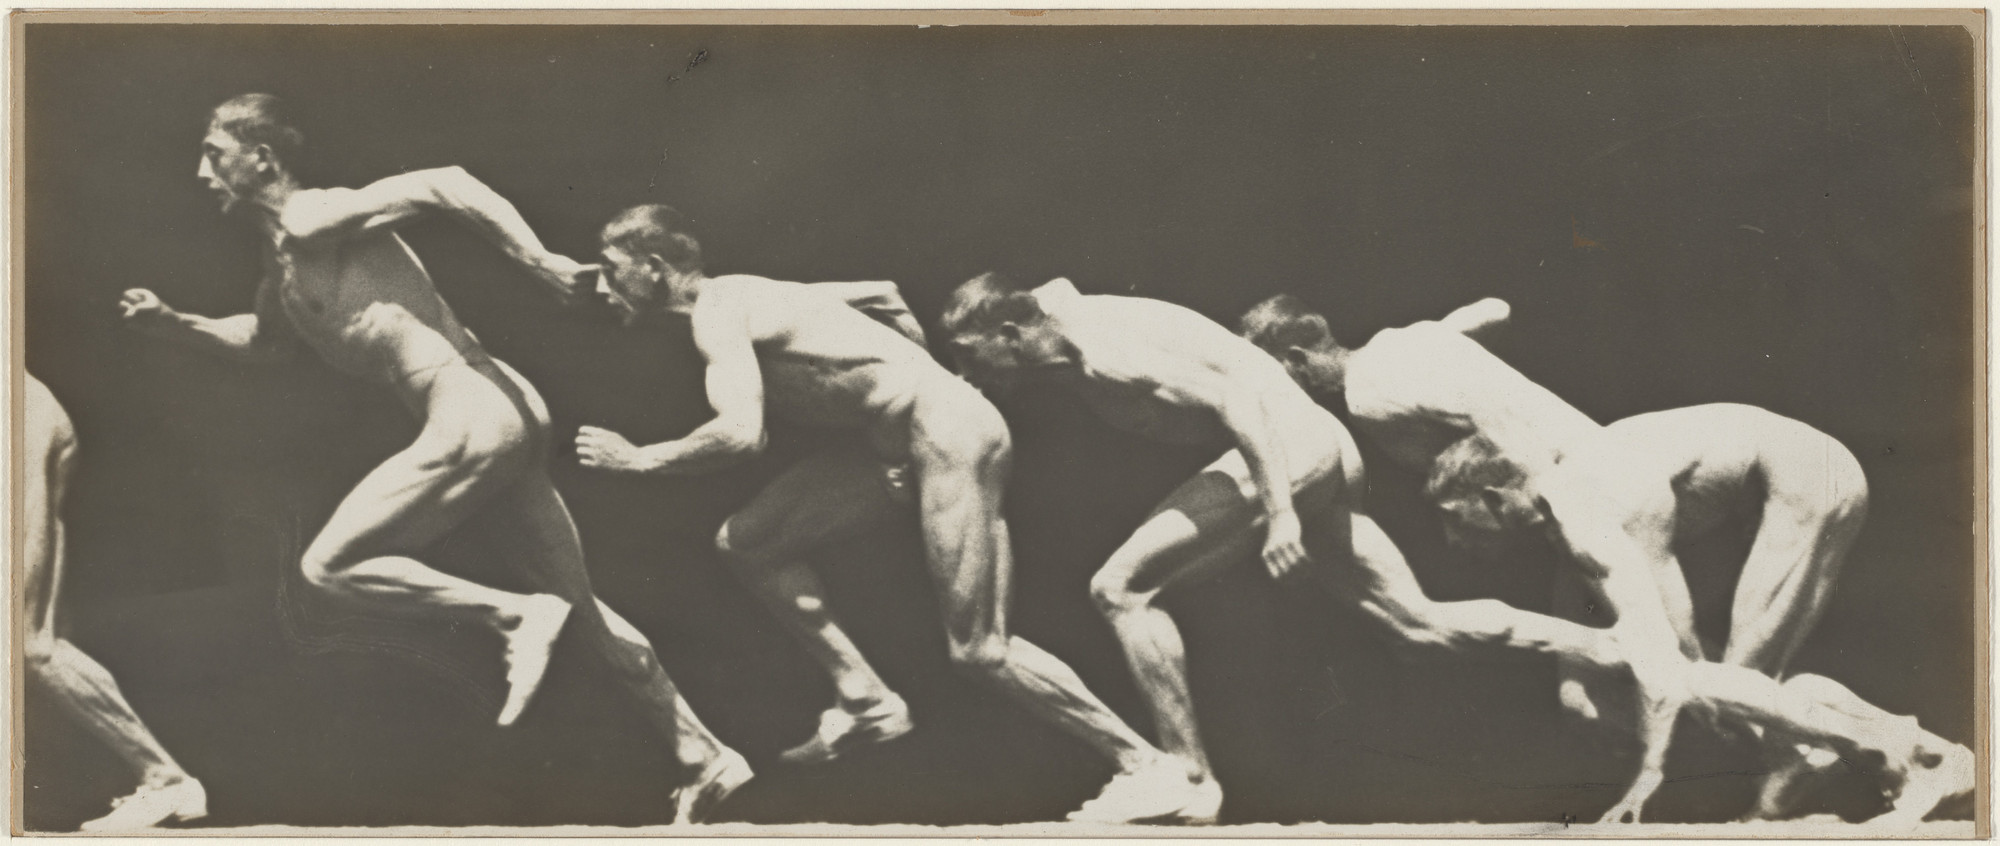 Étienne-Jules Marey, Georges Demeny. Untitled (Sprinter). After 1893